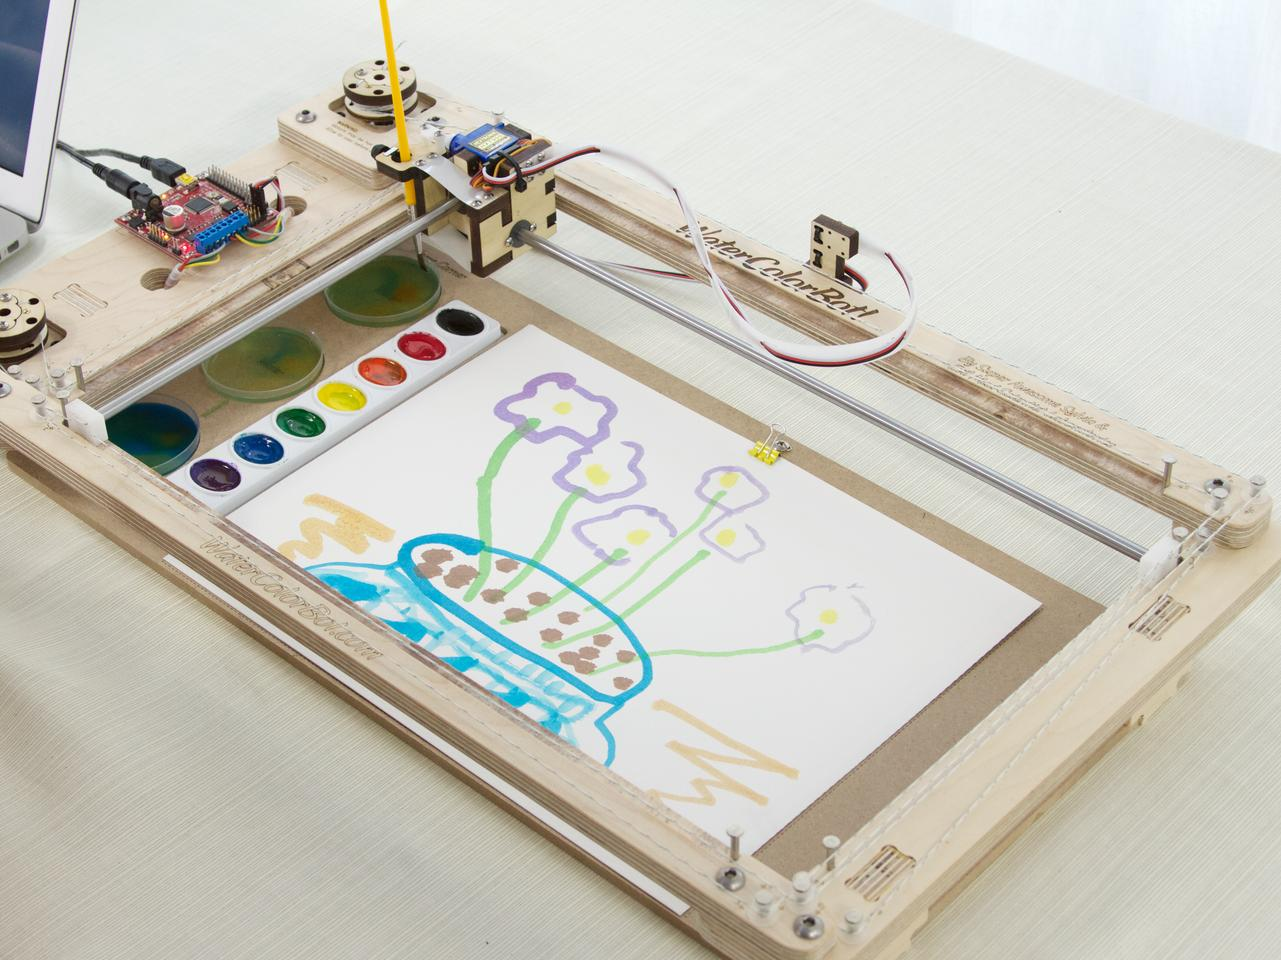 The WaterColorBot doesn't require any pricey or hard-to-find materials to paint, just a set of standard watercolors, a small paintbrush, and a sheet of paper